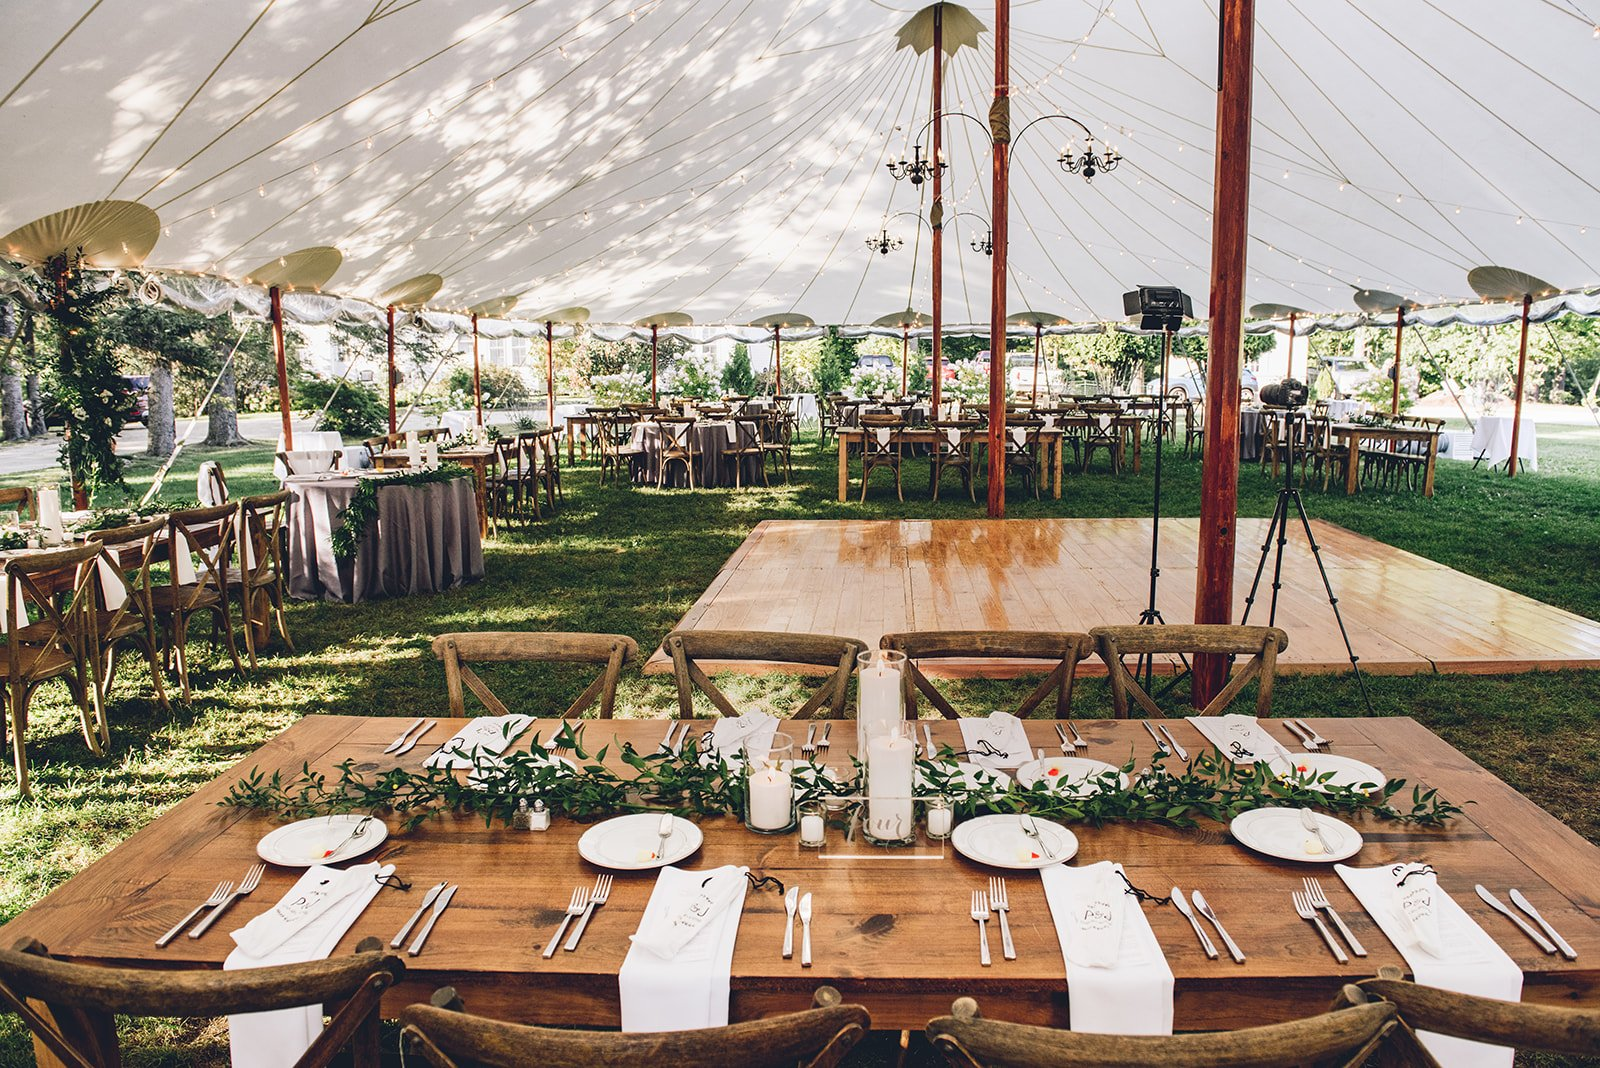 Aldworth Manor Wedding Venue Tent with Farmhouse Tables and Greenery